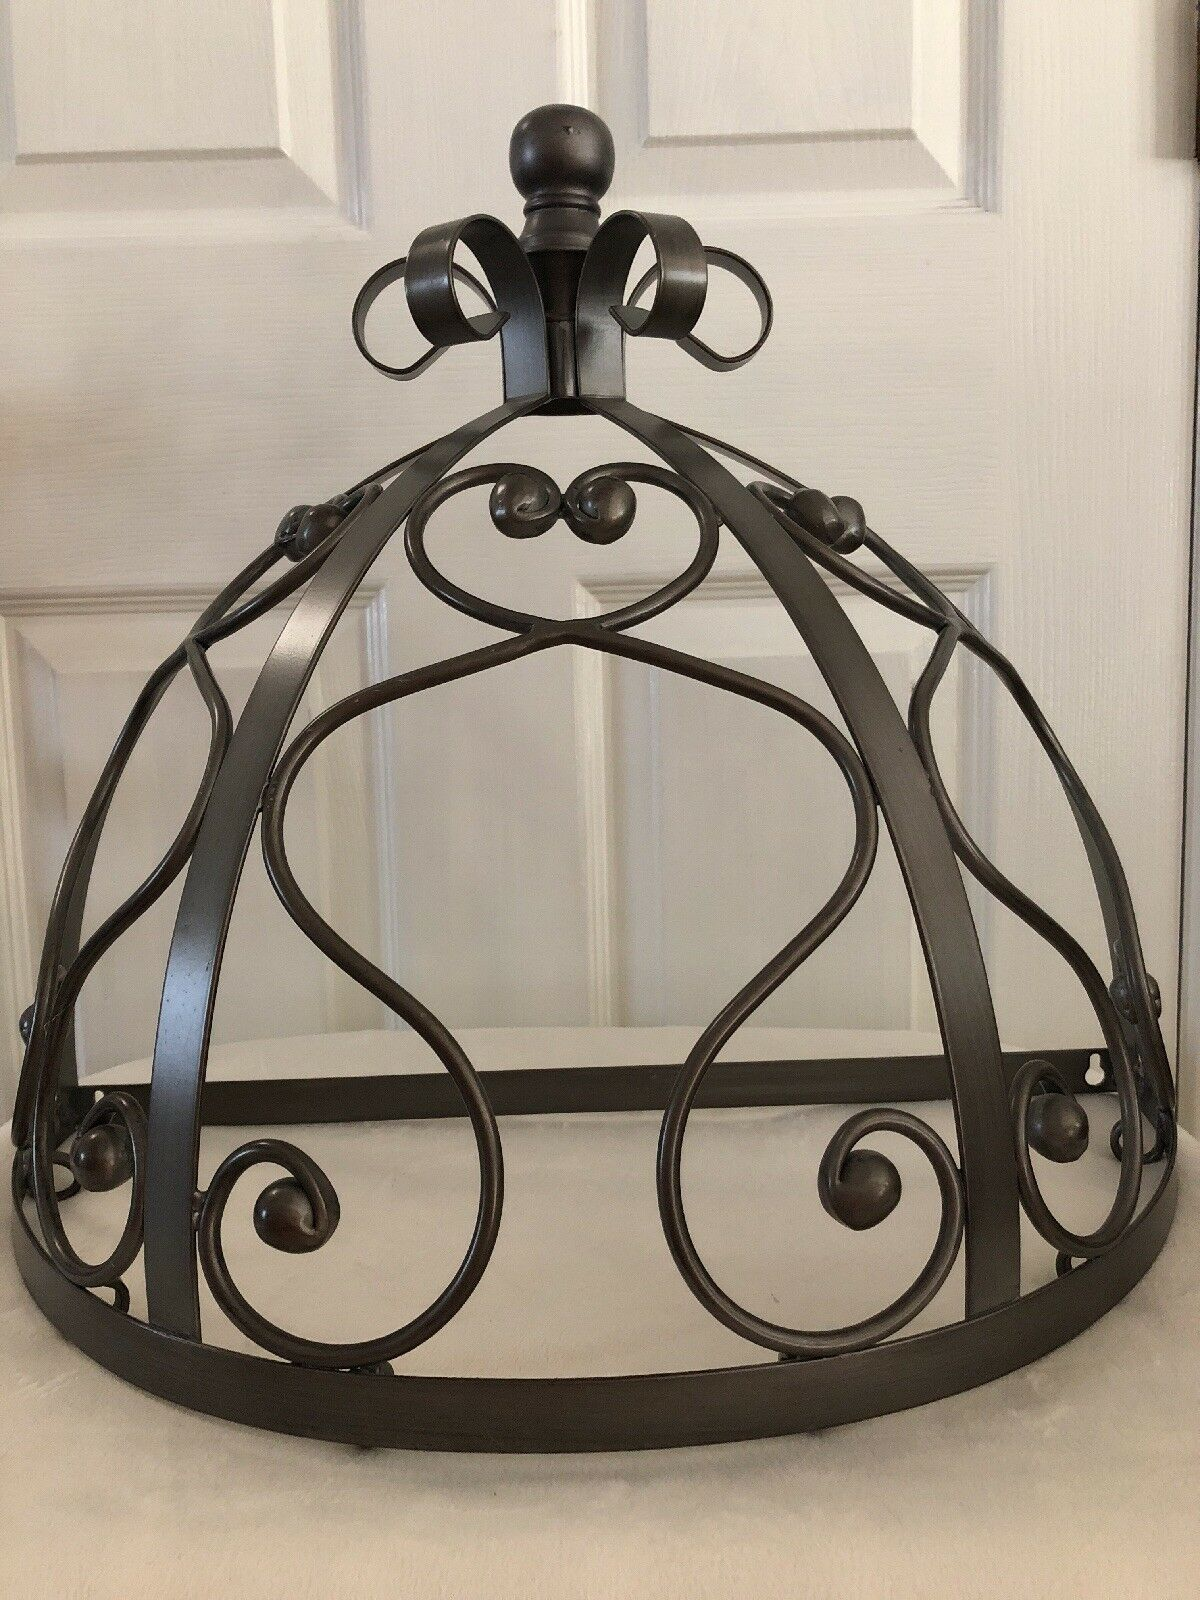 BEAUTIFUL Bombay Company Metal CANOPY Pewter Farbe Half Circle Wall Mount Crown